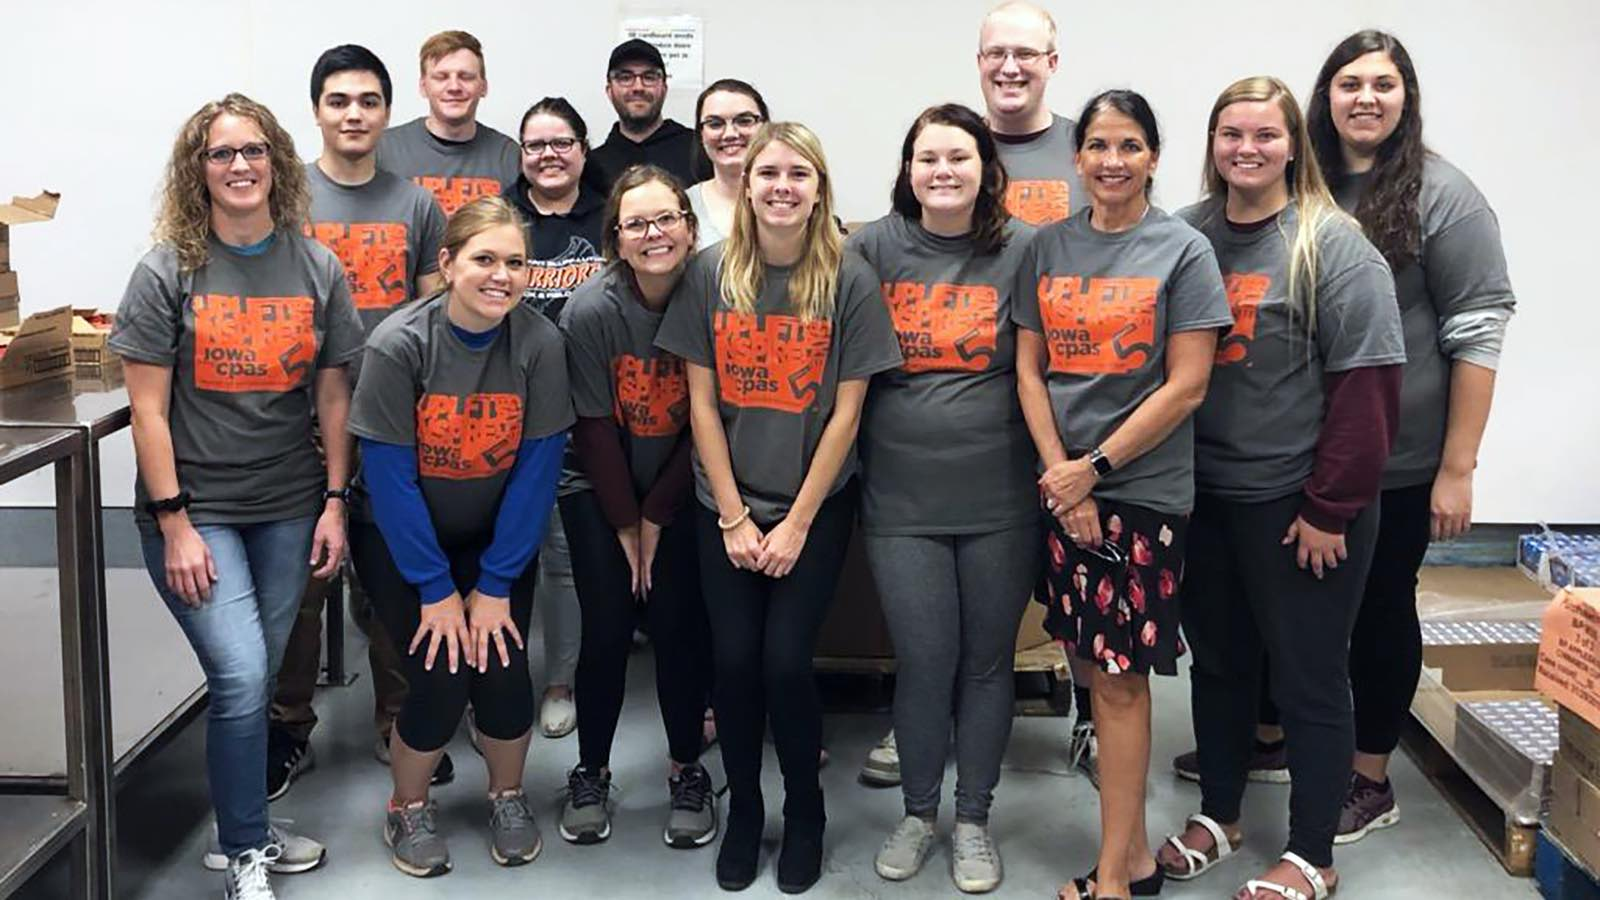 The Morningside College Accounting Club volunteering at the Siouxland Food Bank.